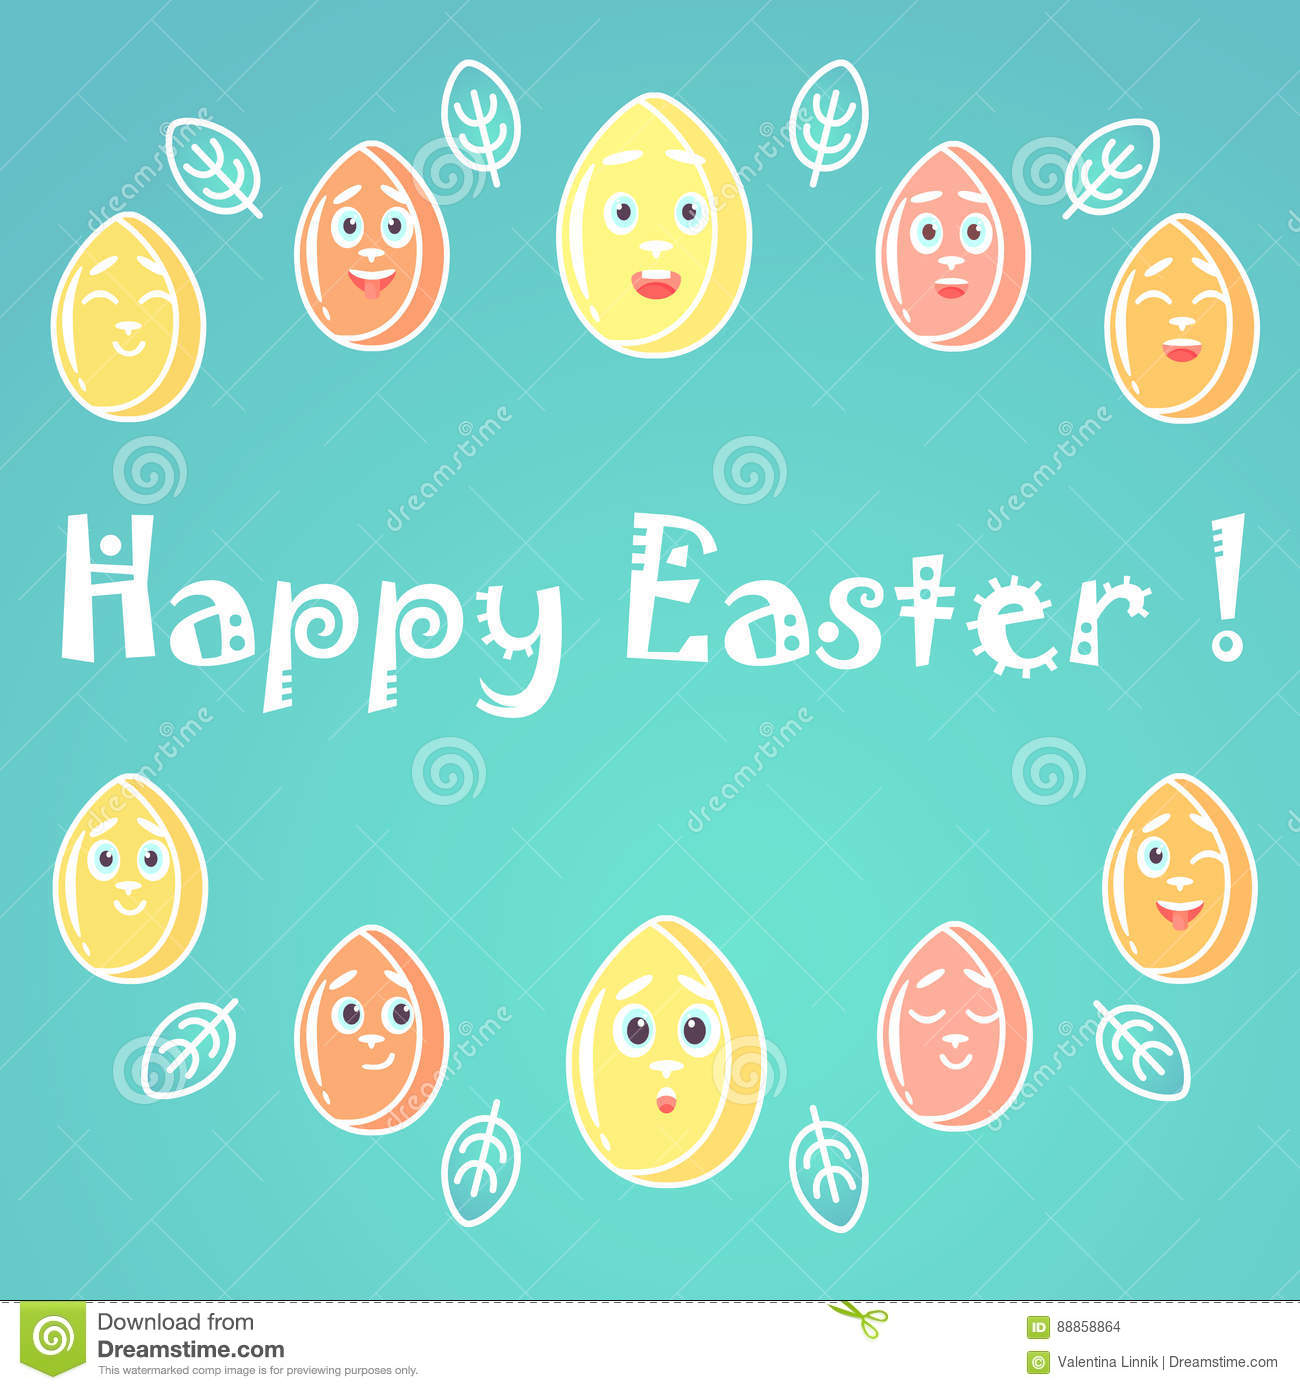 71eeb5626223 A greeting card for Easter, with emotional bright colored Easter eggs,  white lines for decoration. Royalty-Free Illustration